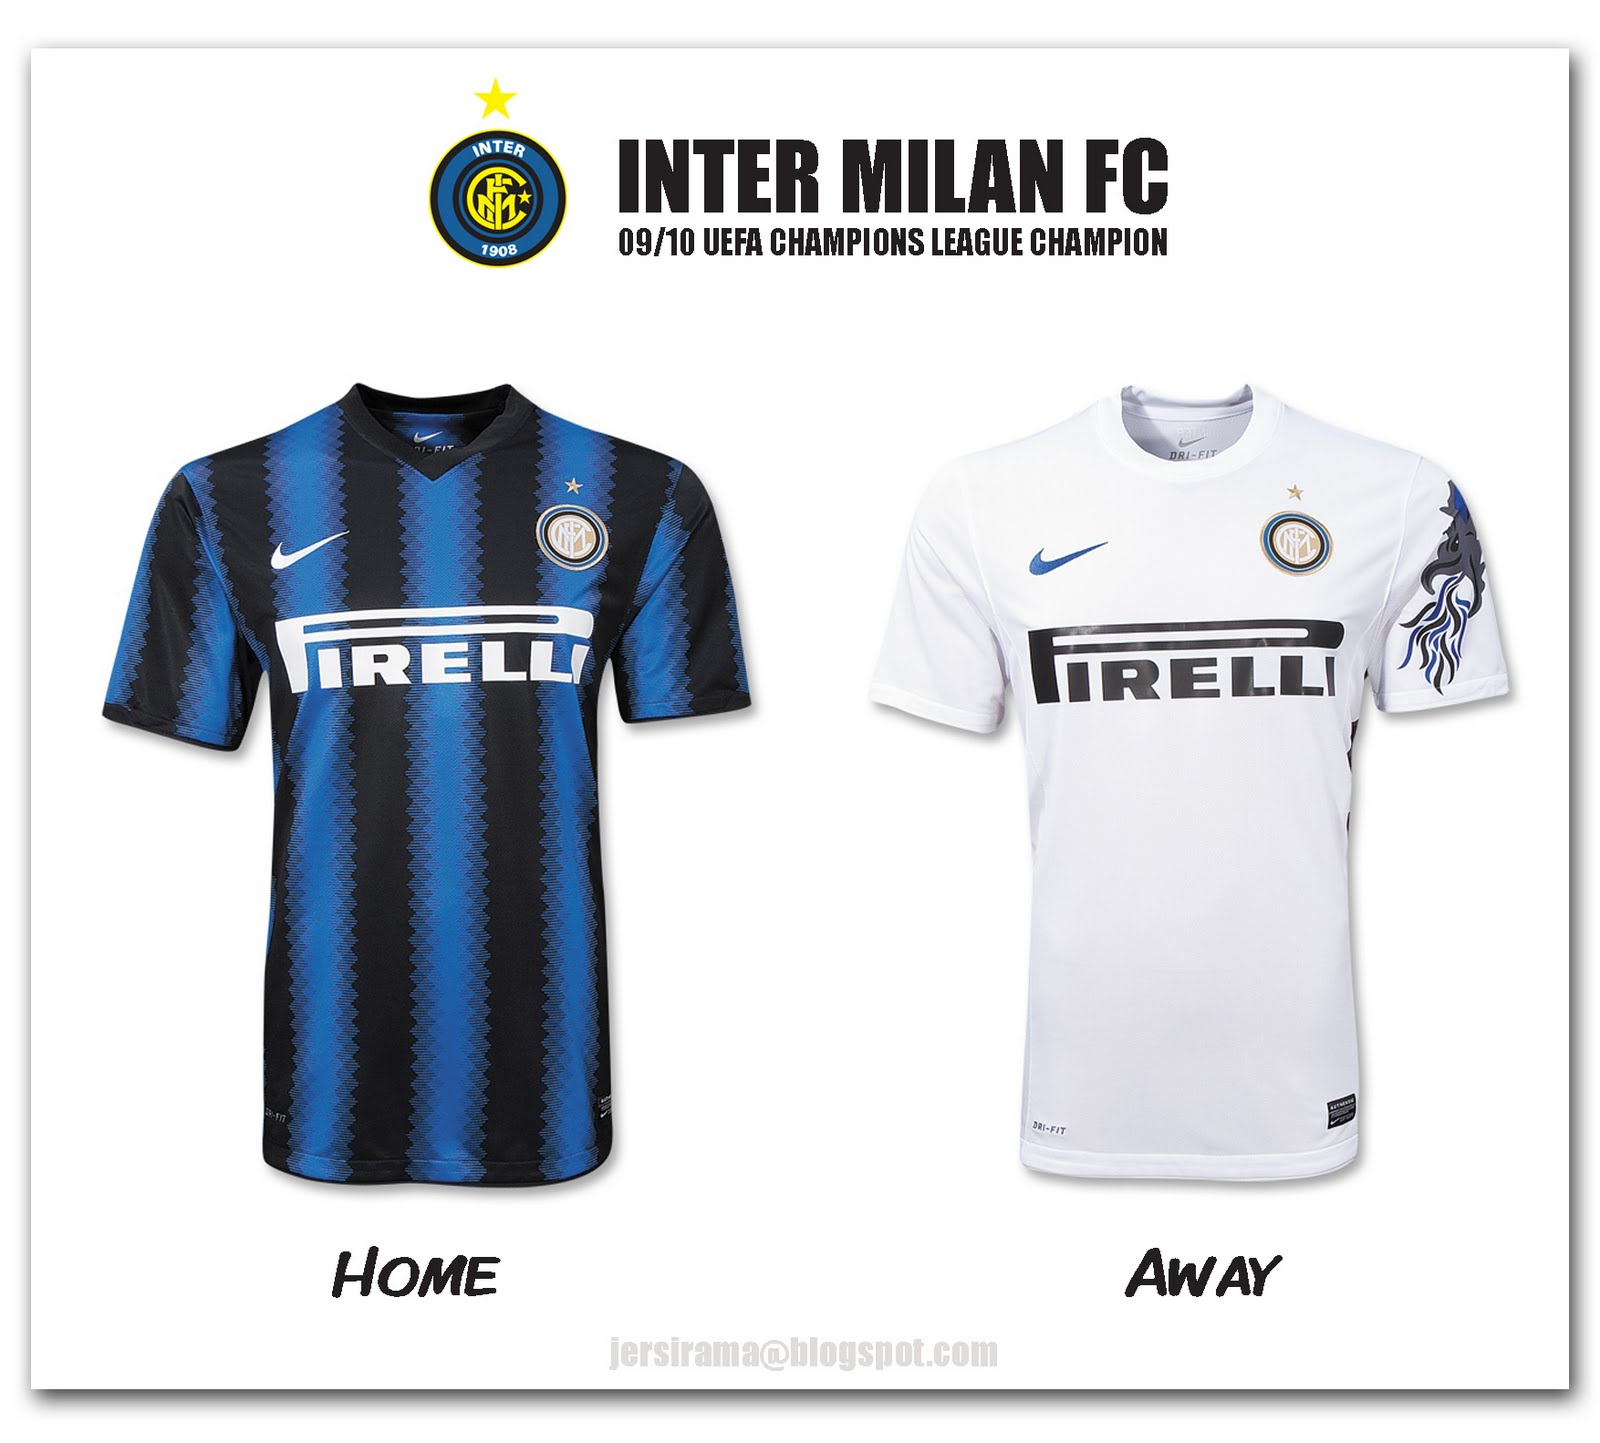 784bc1235 Inter Milan Home   Away Jersey 2010 2011